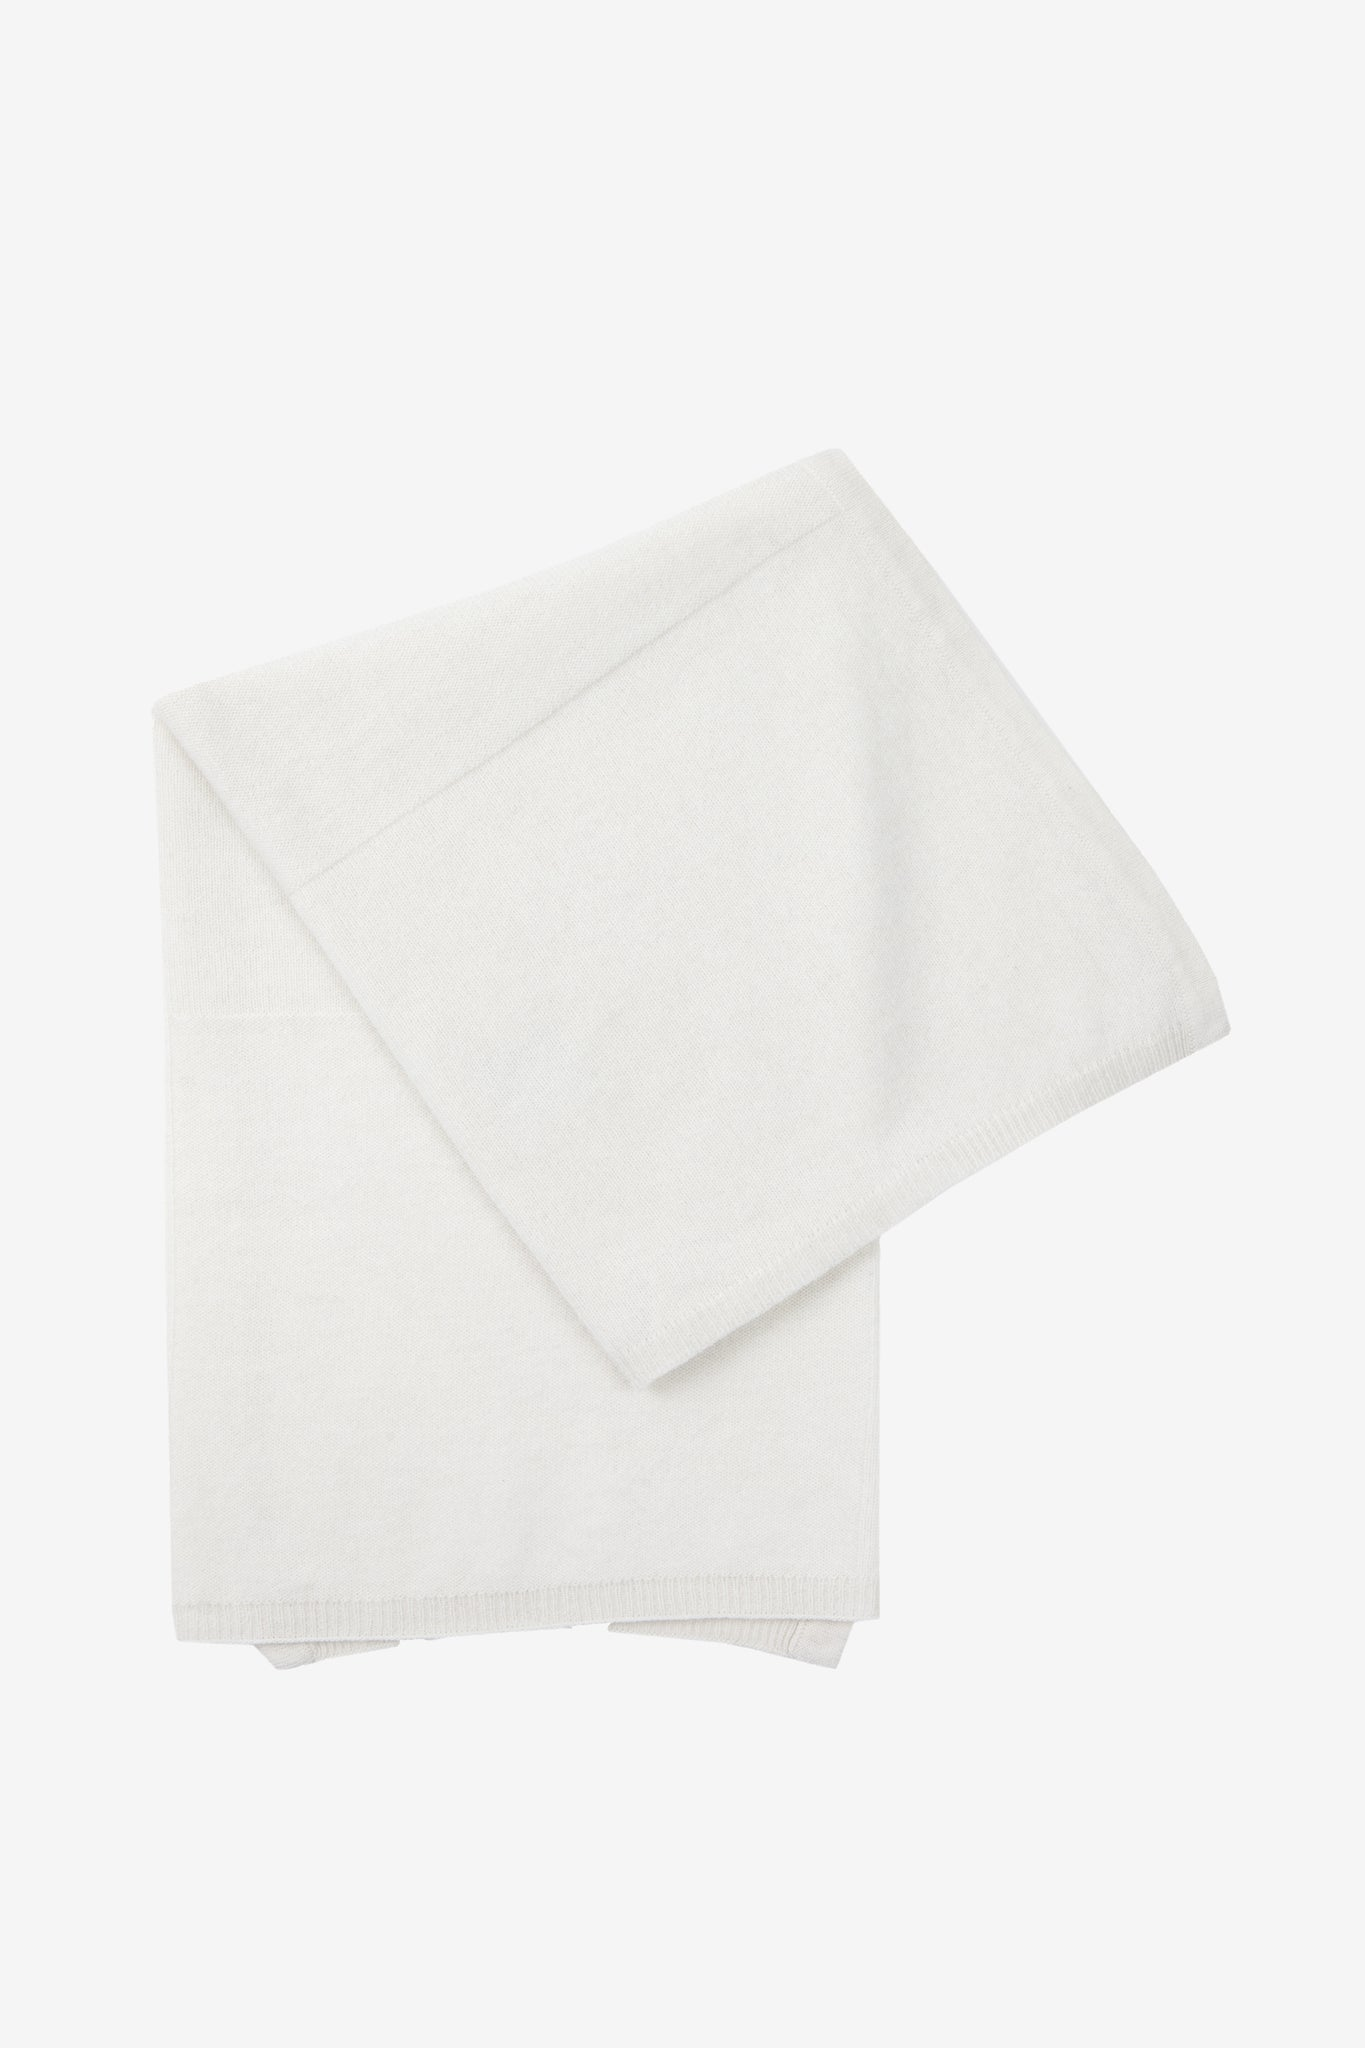 Ilta baby blanket in white